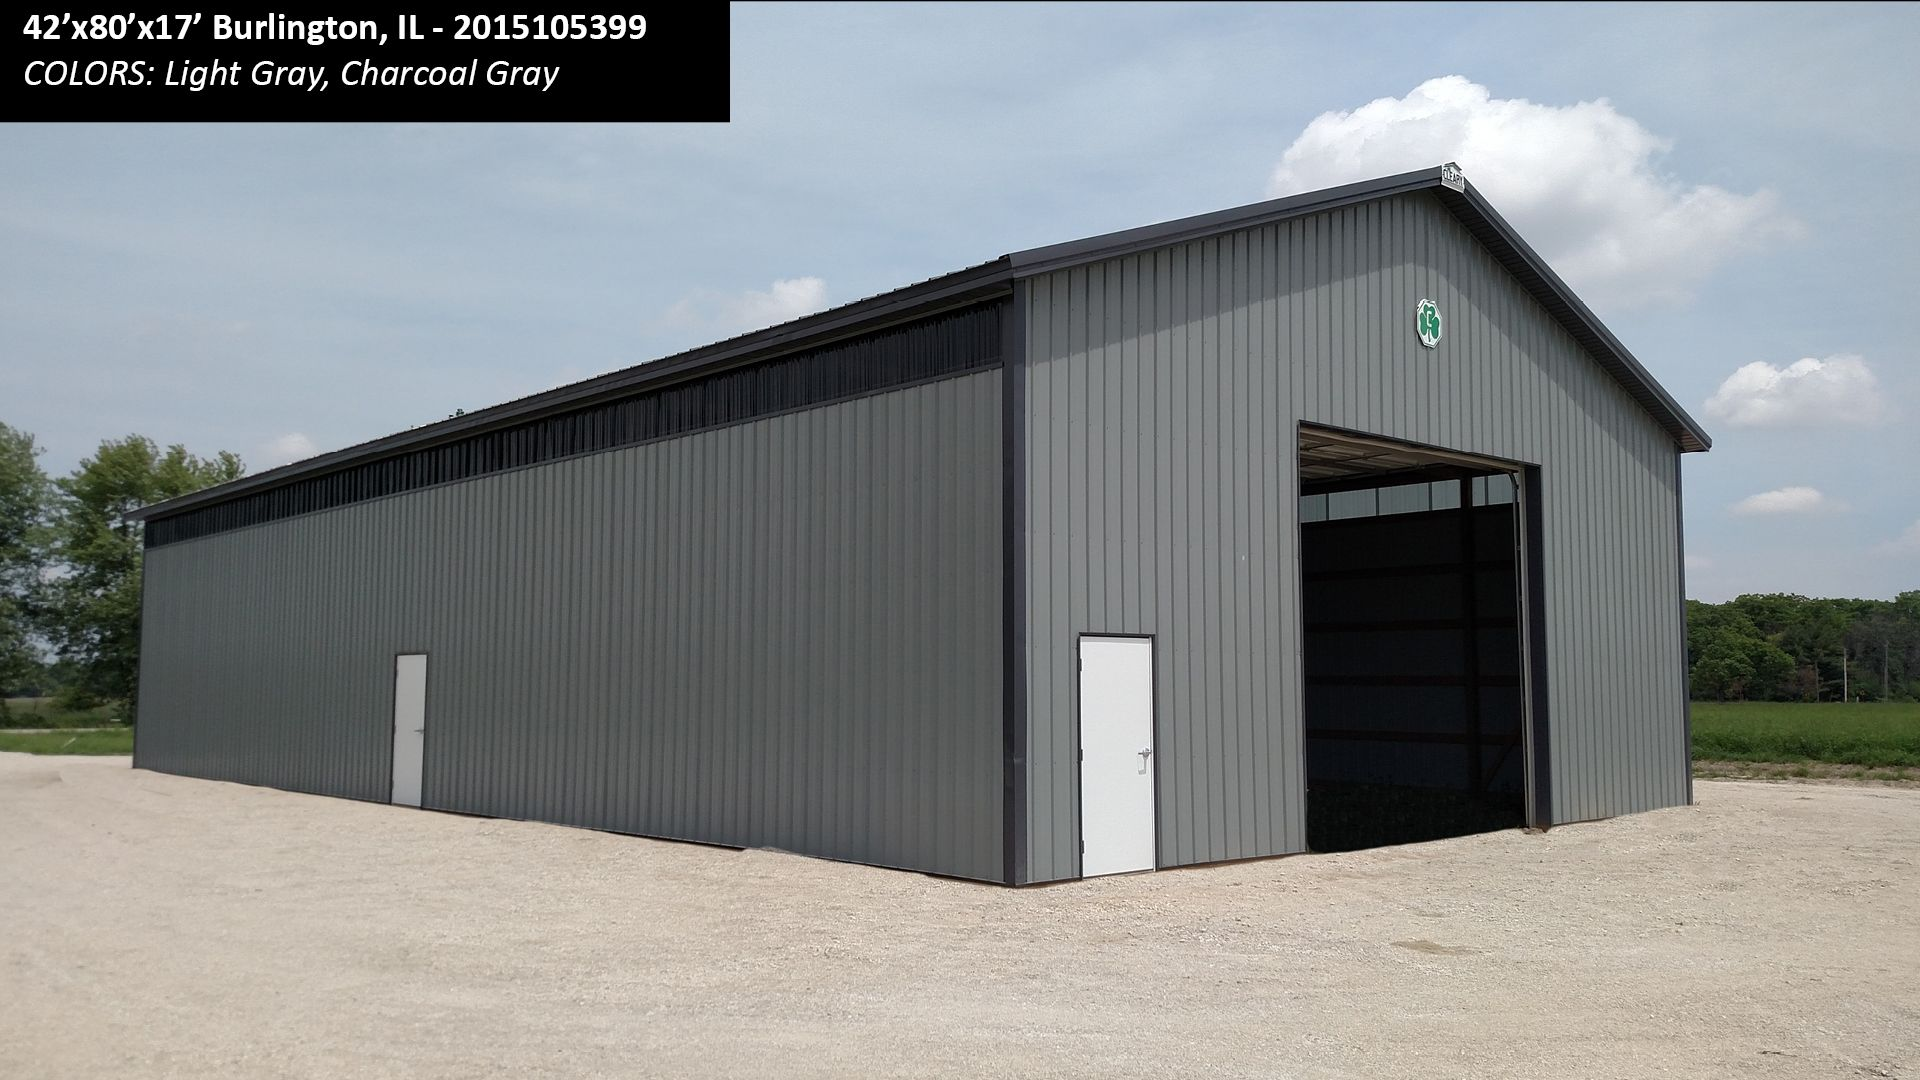 42 X80 X17 Cleary Machinery Building In Burlington Il Colors Light Gray Charcoal Gray Cleary Buildings Steel Building Homes Metal Shop Building